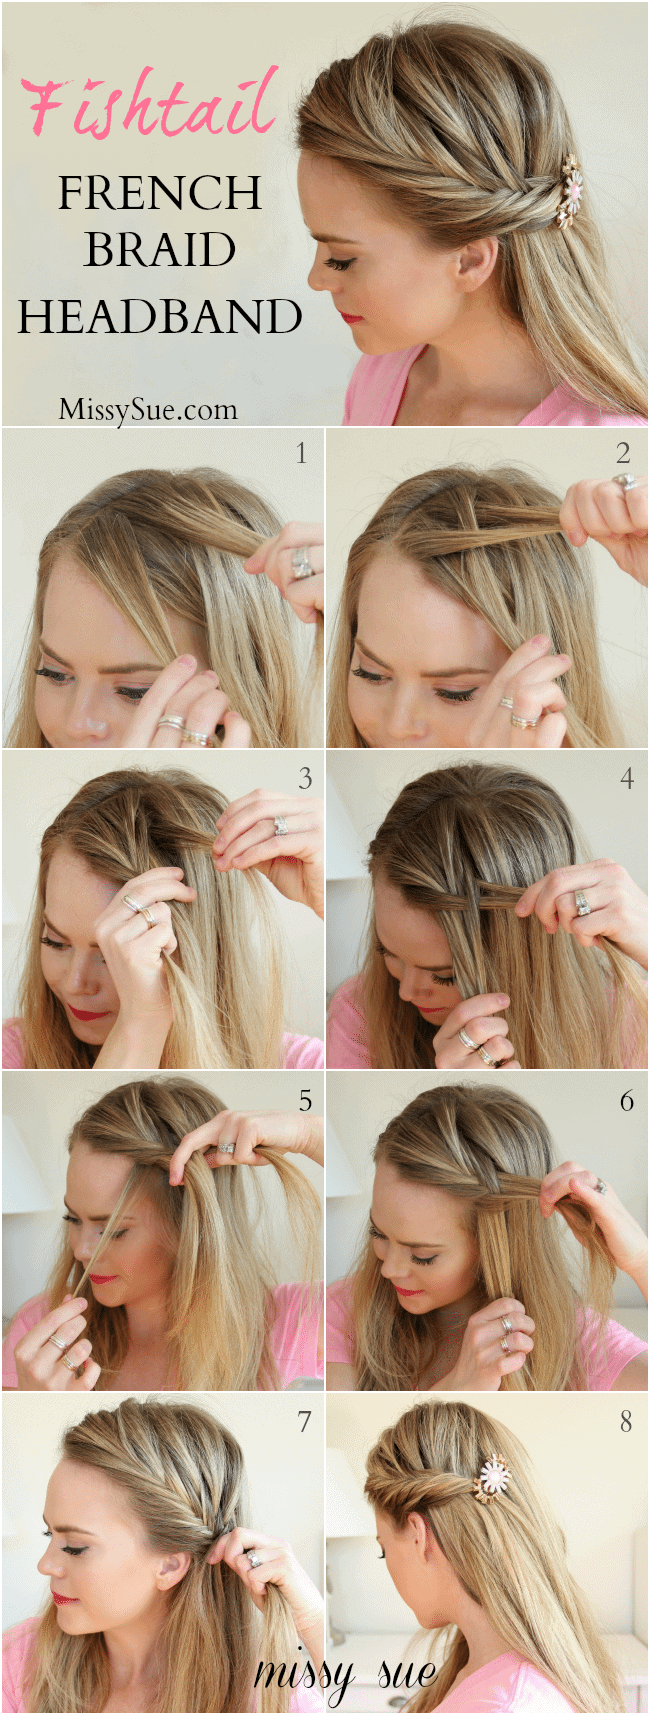 fishtail-french-braid-headband-missy-sue-blog